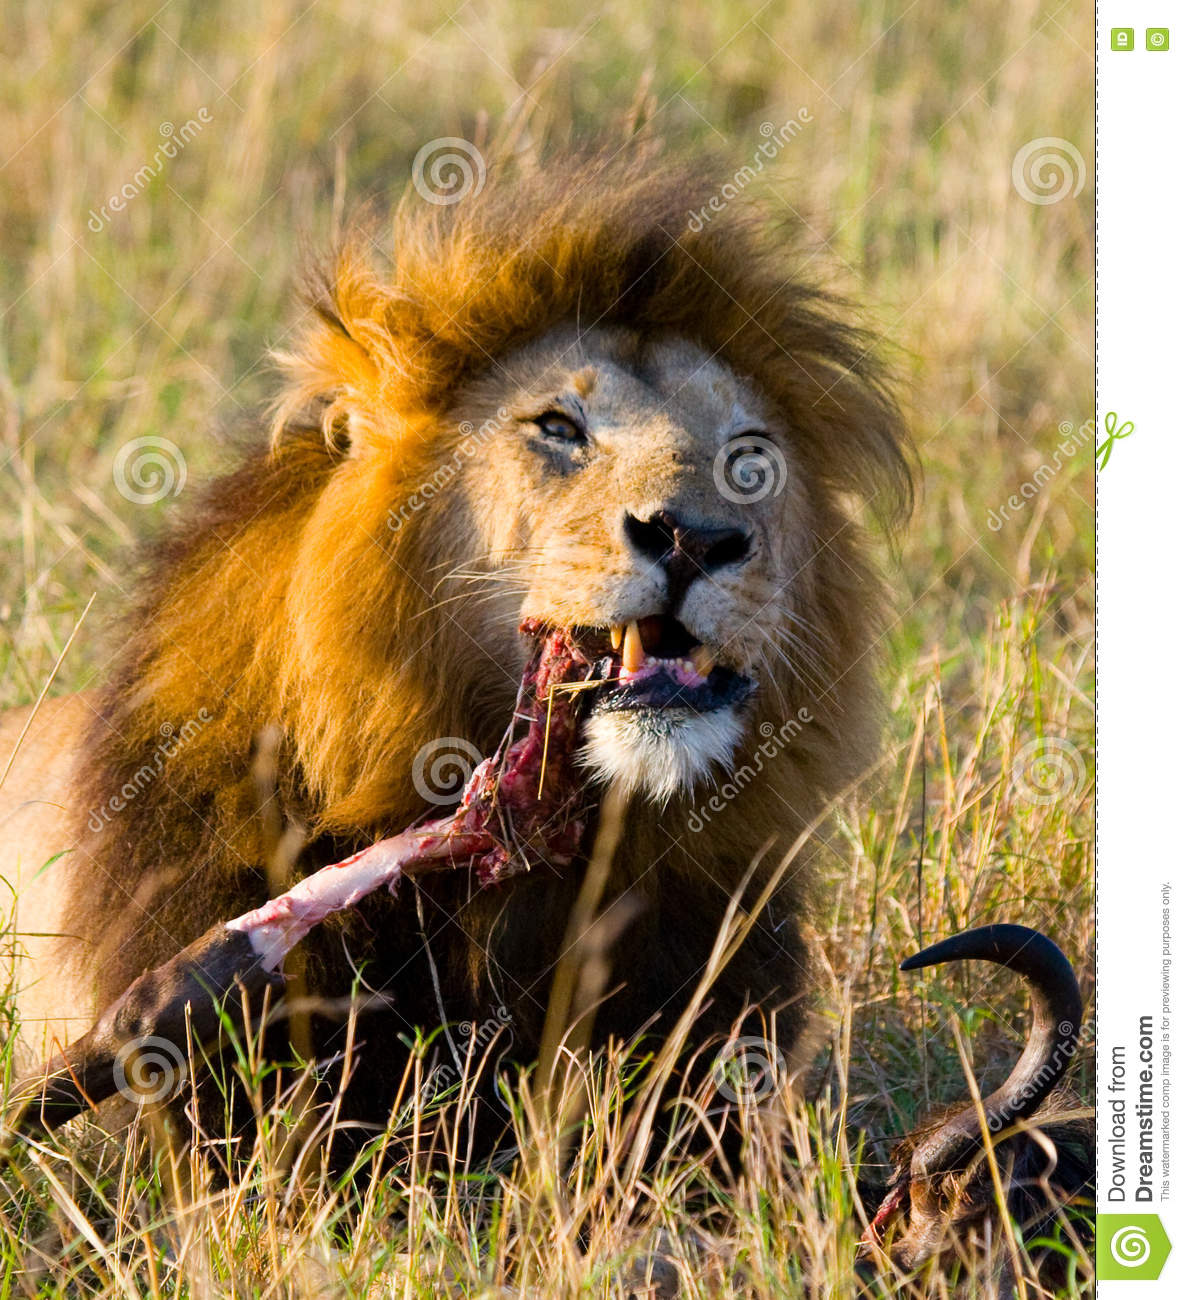 Big male lion with gorgeous mane eating prey. National Park. Kenya. Tanzania. Maasai Mara. Serengeti.